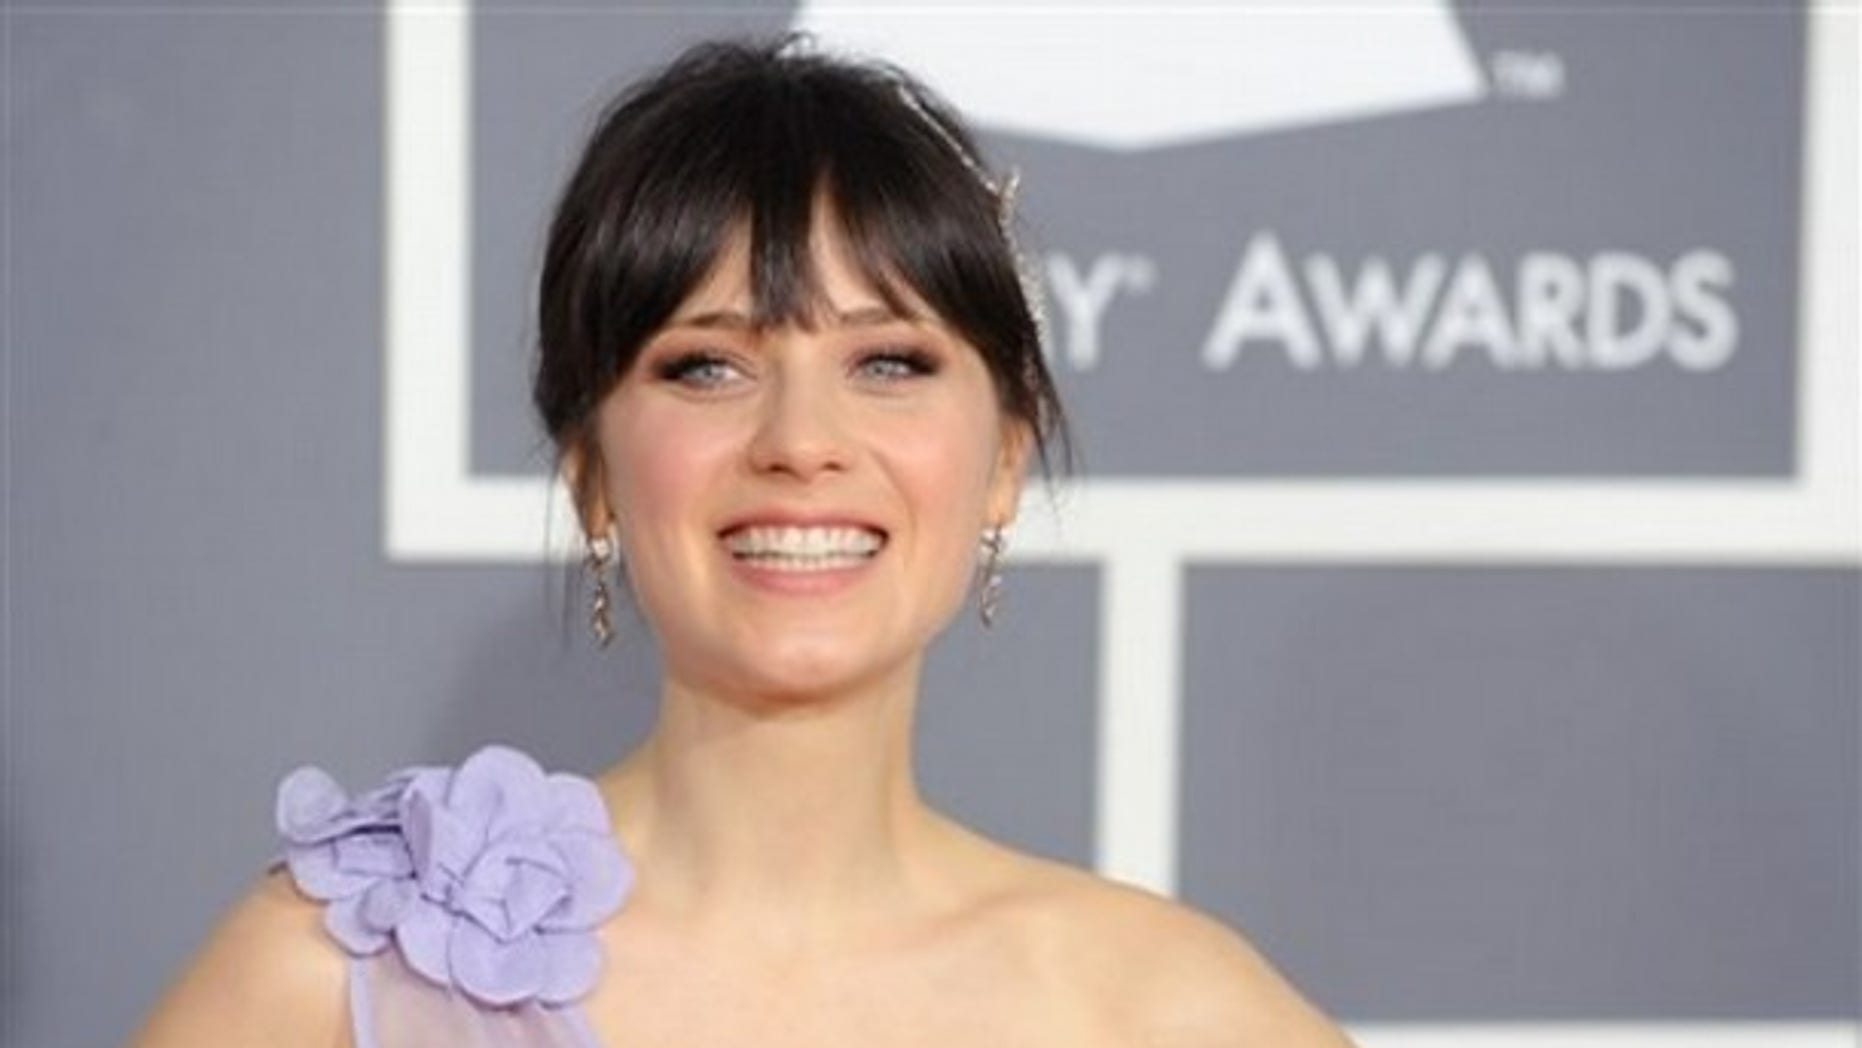 Zooey Deschanel arrives at the 51st Annual Grammy Awards on Sunday, Feb. 8, 2009, in Los Angeles. (AP Photo/Chris Pizzello)